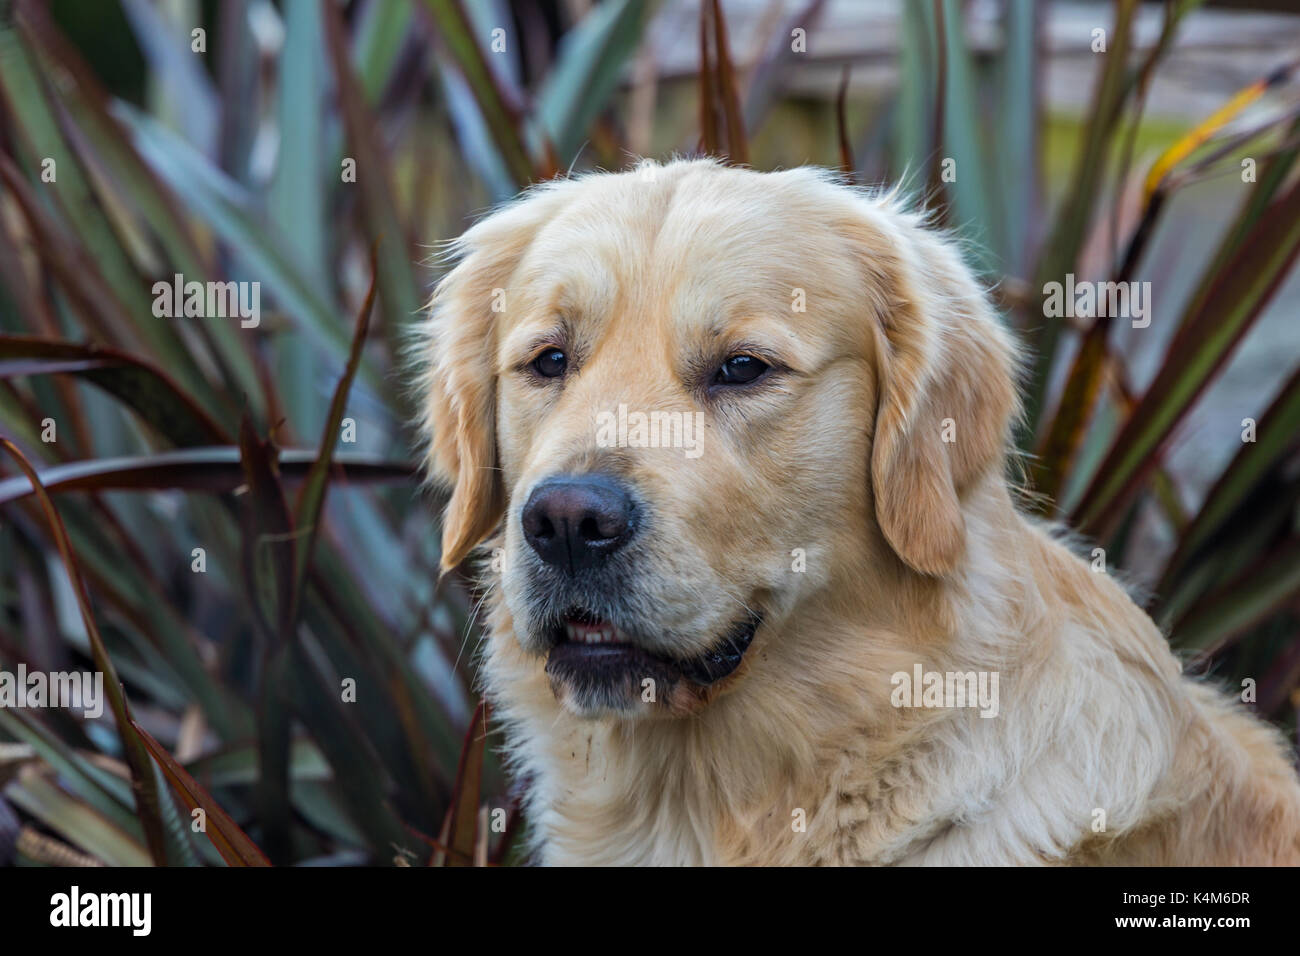 Portraits of pure breed Golden Retriever dogs - Stock Image